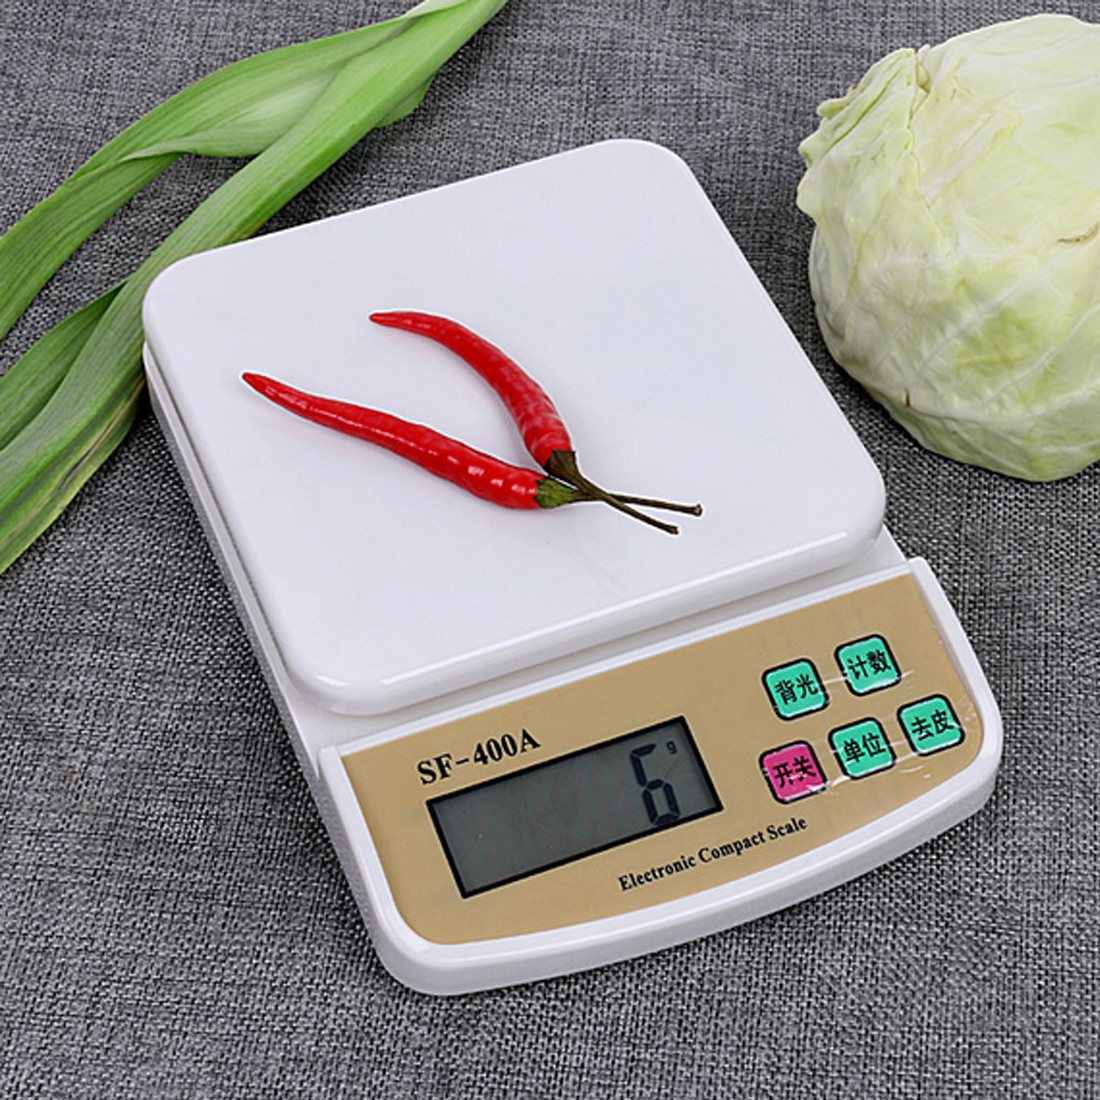 1pcs kitchen foods Scale Mini Digital Electronic scales Pocket 10Kg/1g Kitchen Weighing Scale LCD Display Backlight Scales